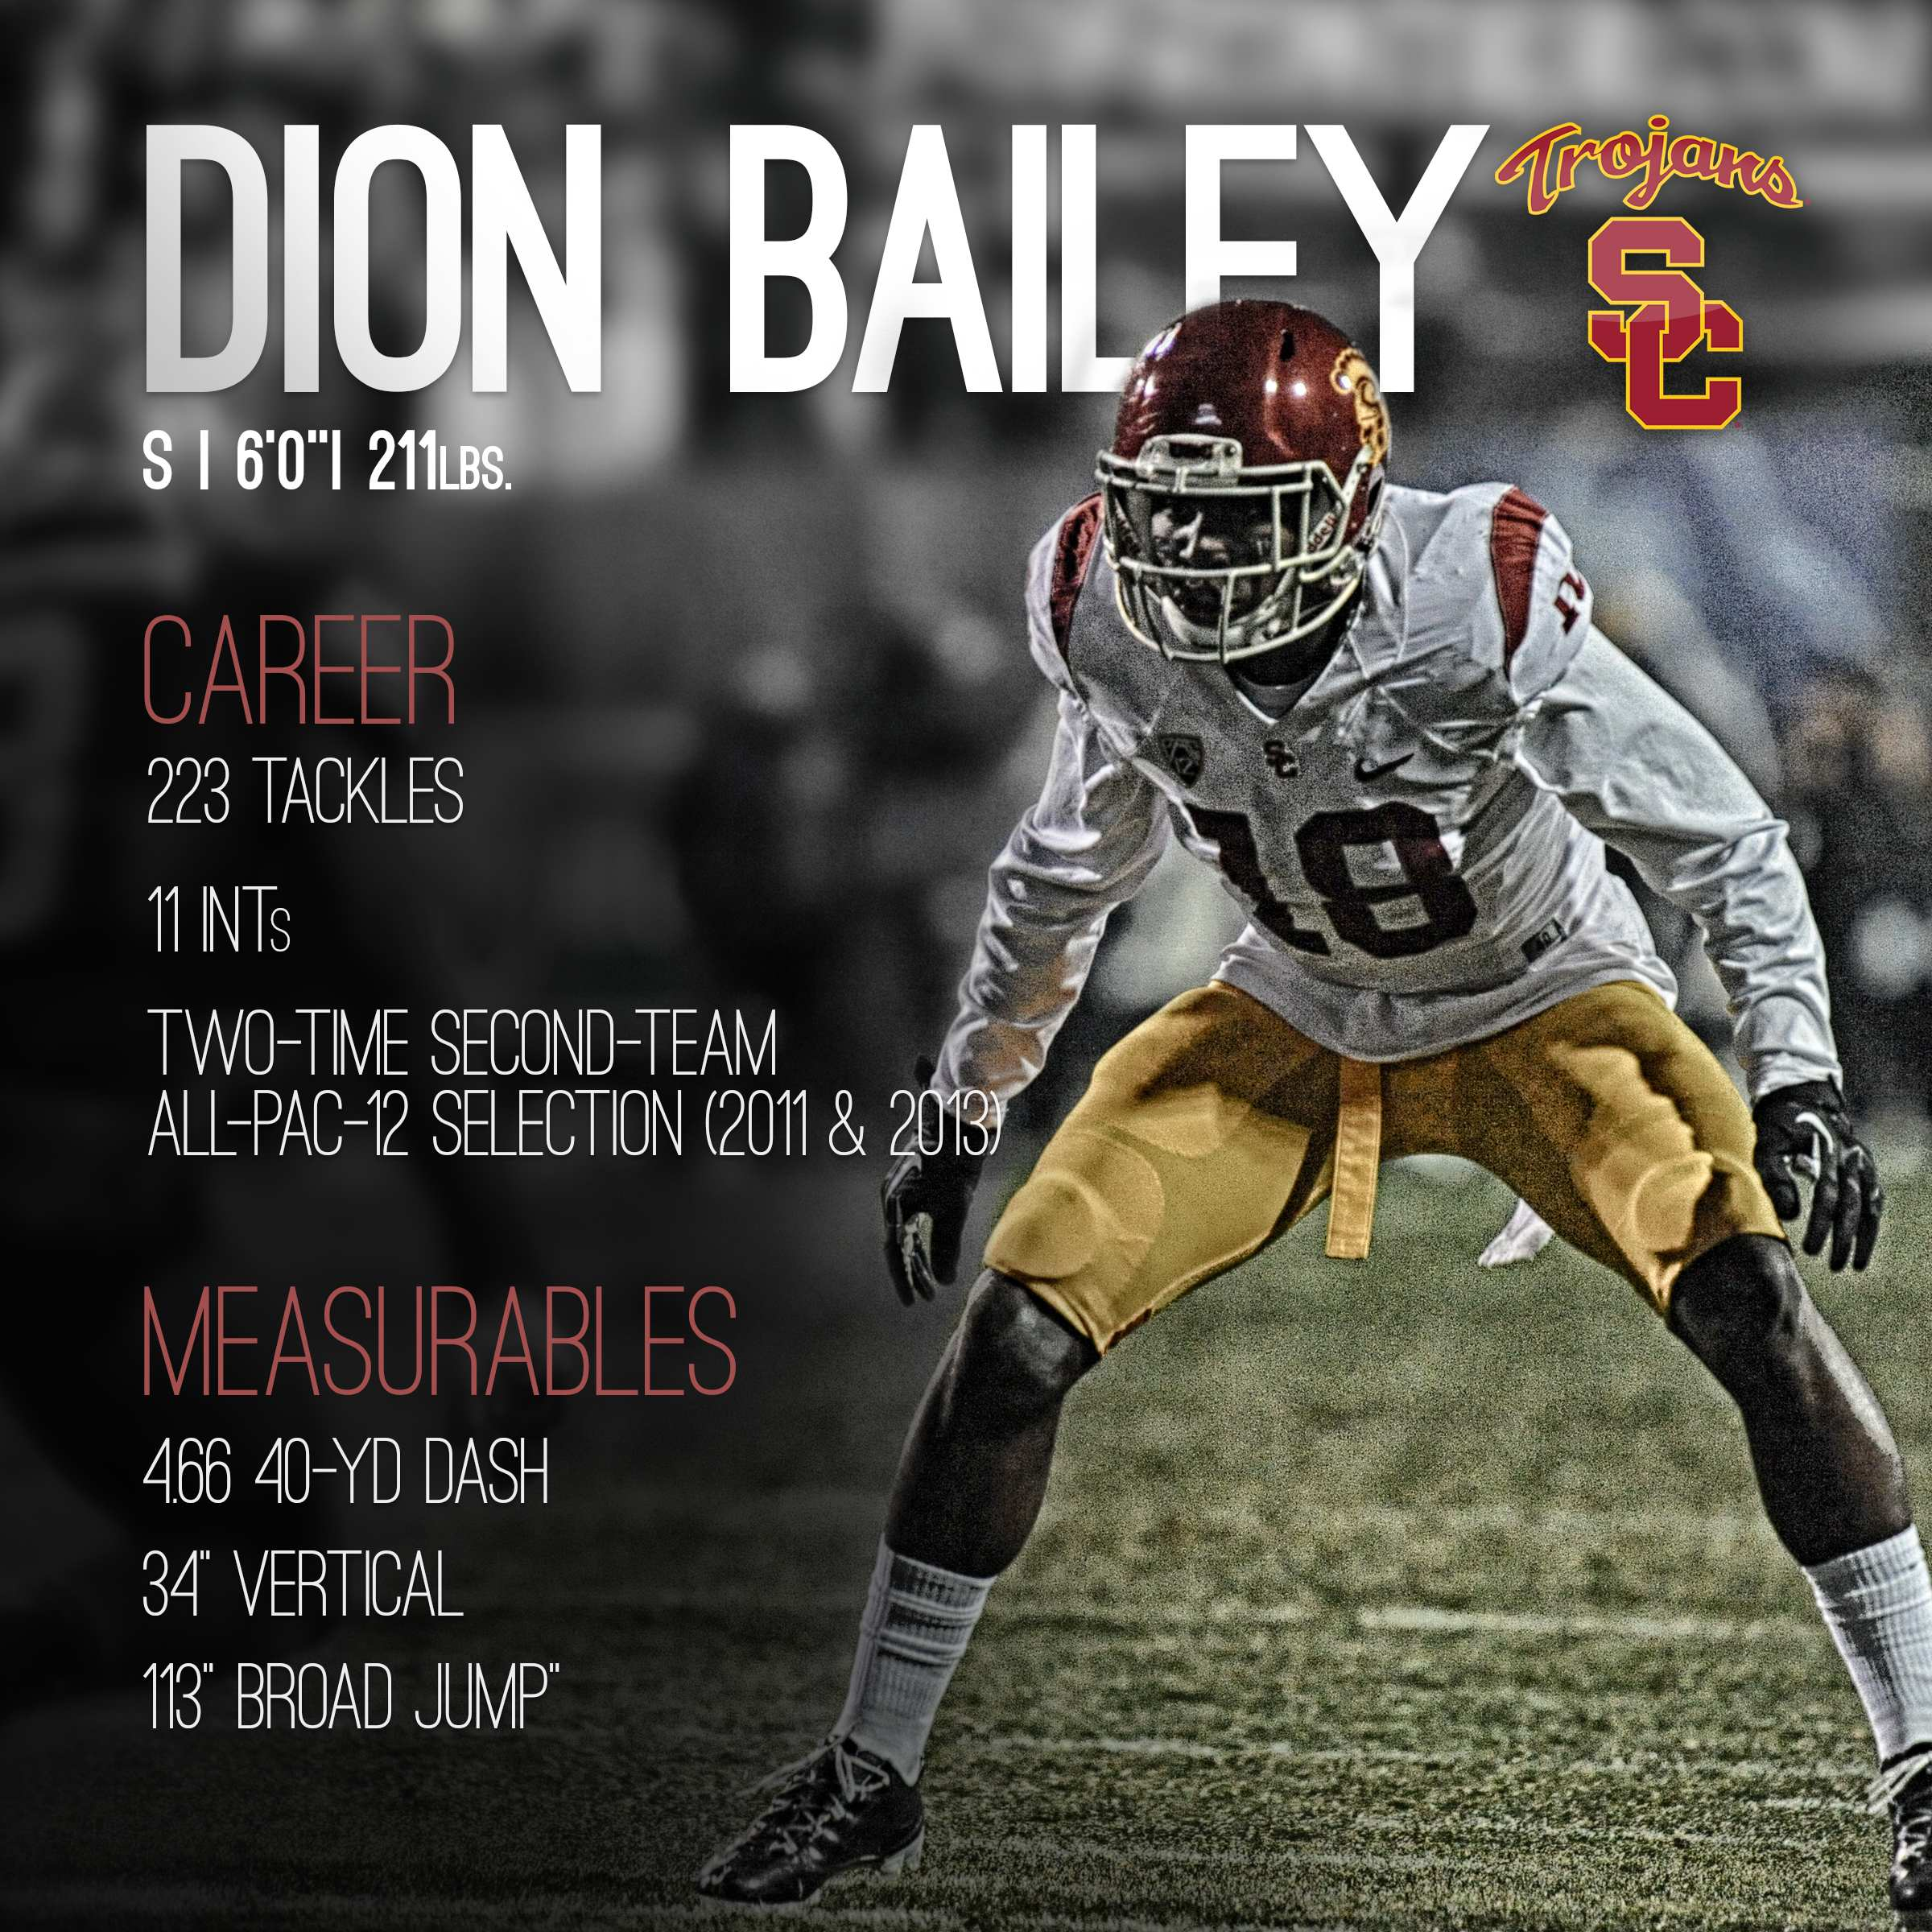 http://usctrojans.com/blog/player-card-dion-bailey.jpg - USC Athletics